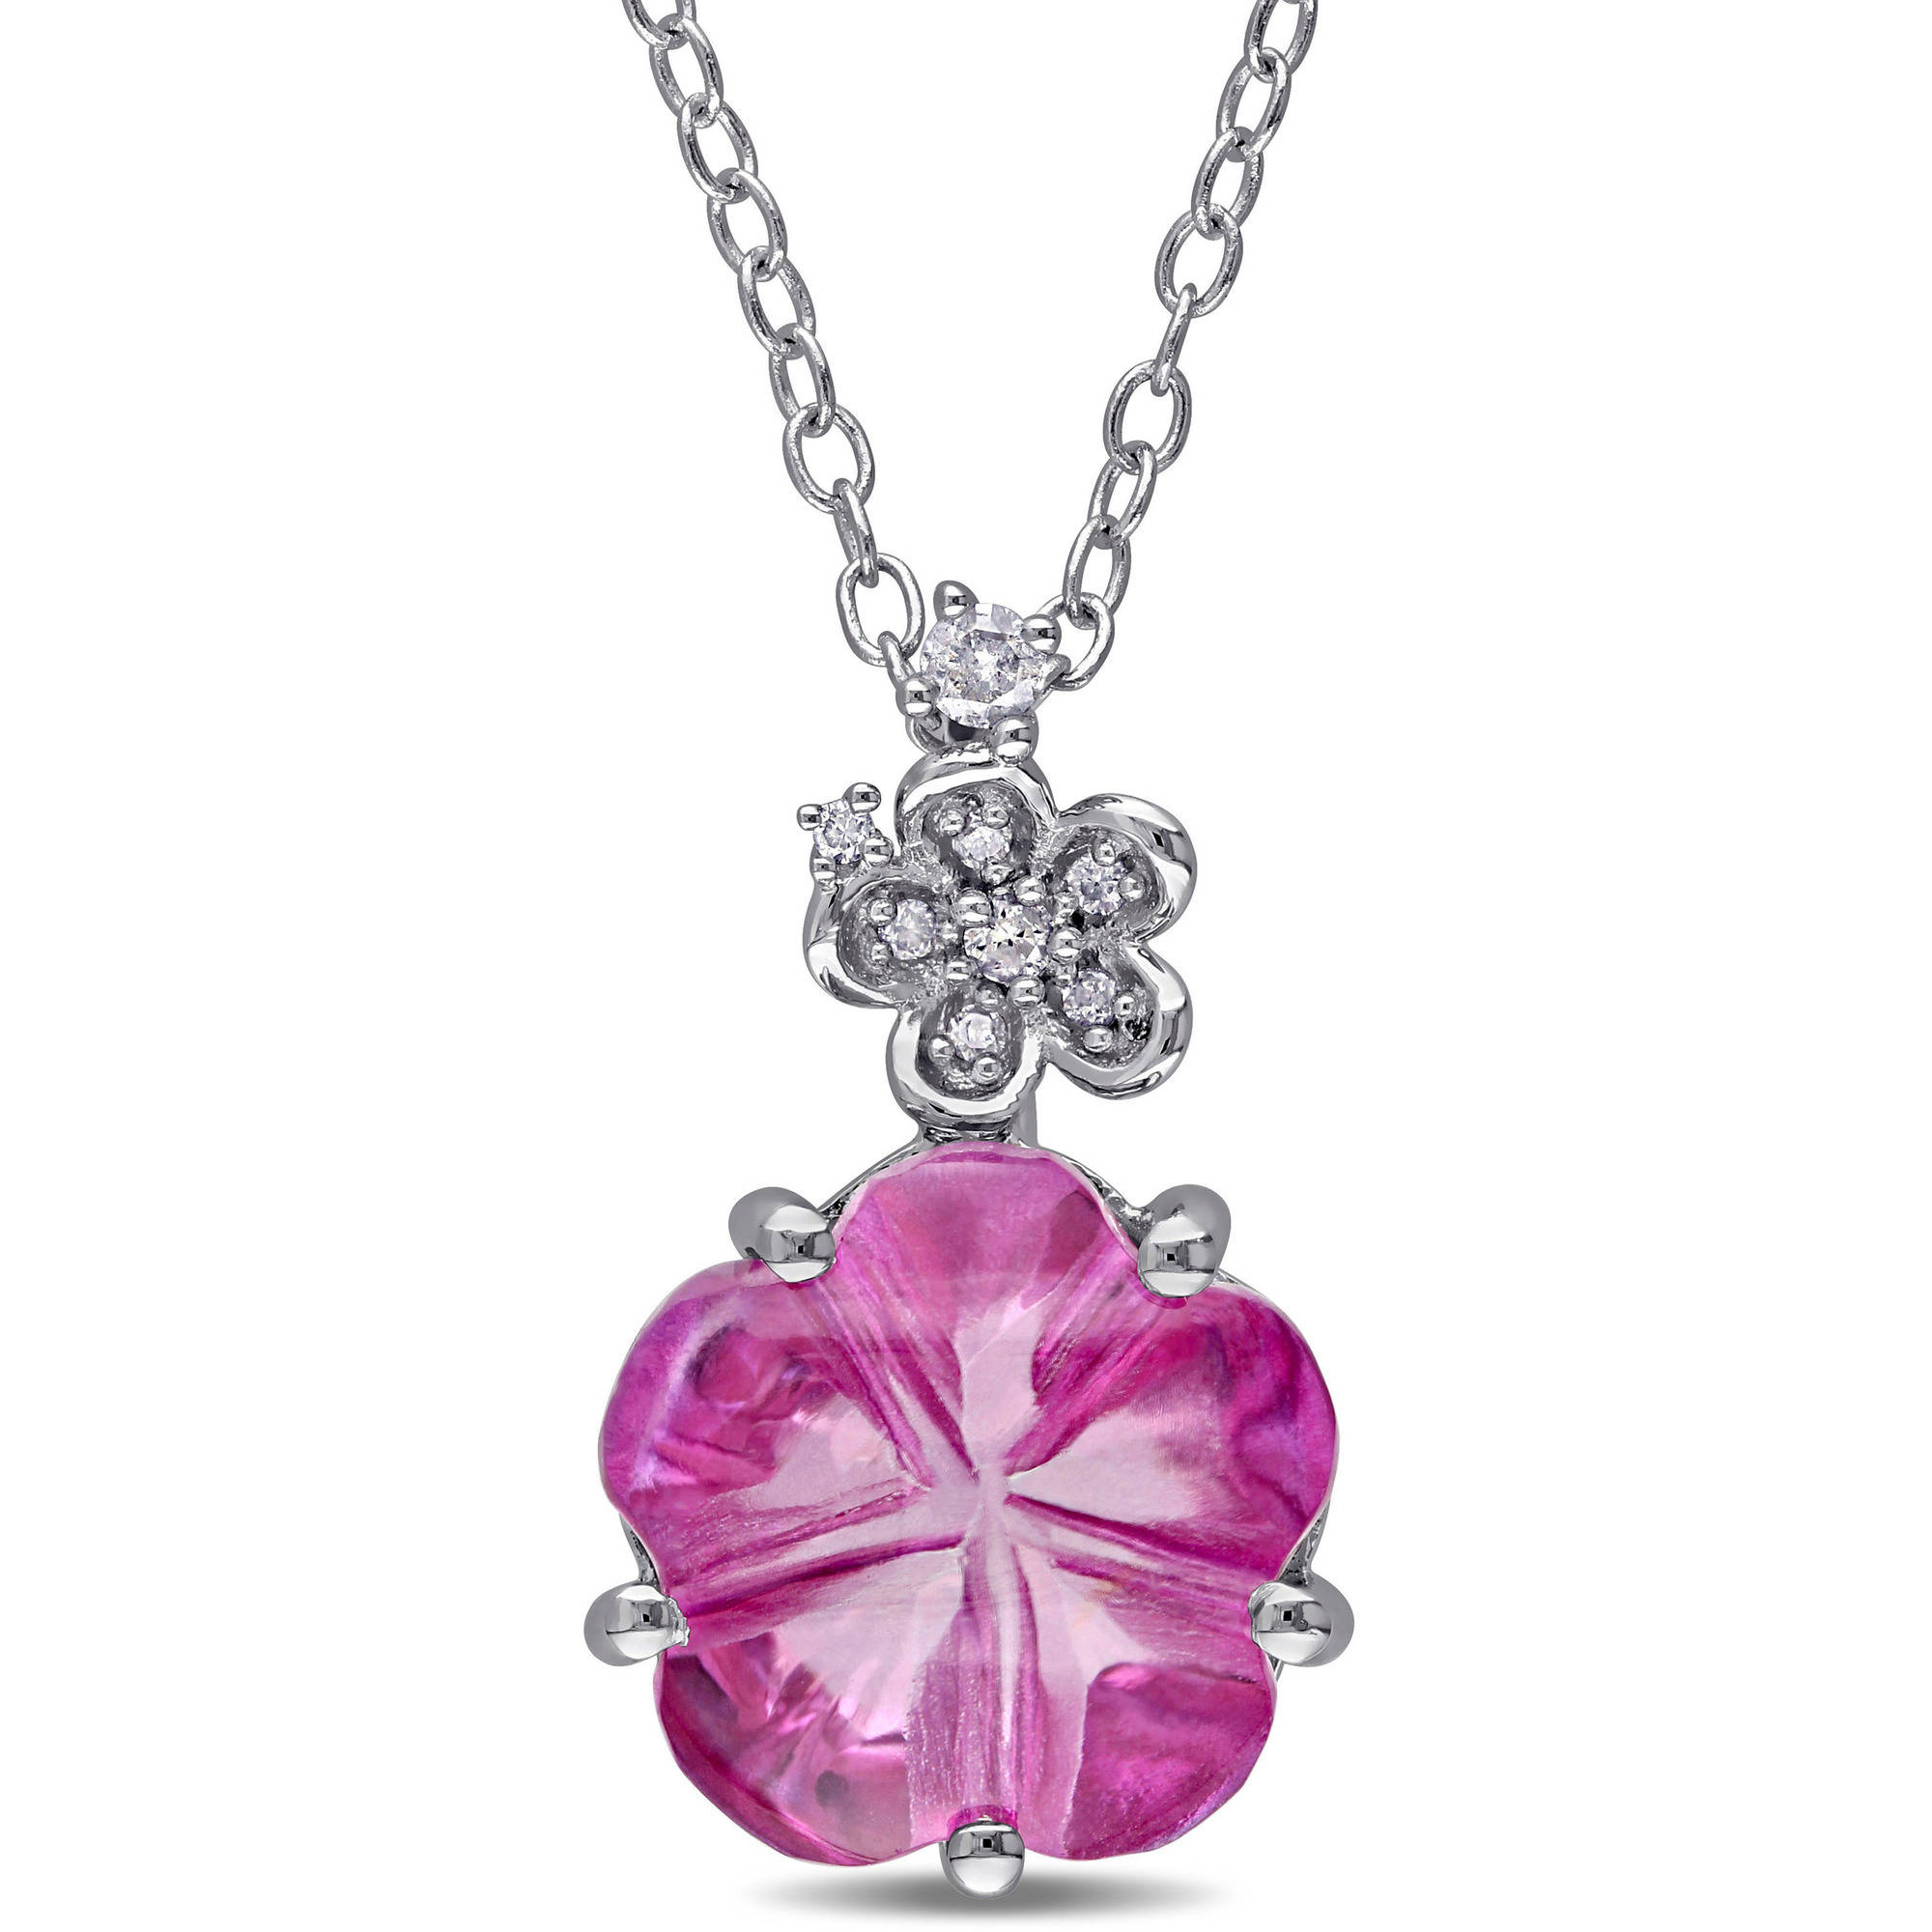 "Tangelo 6-1 4 Carat T.G.W. Pink Topaz and Diamond-Accent Sterling Silver Flower Pendant, 18"" by Tangelo"